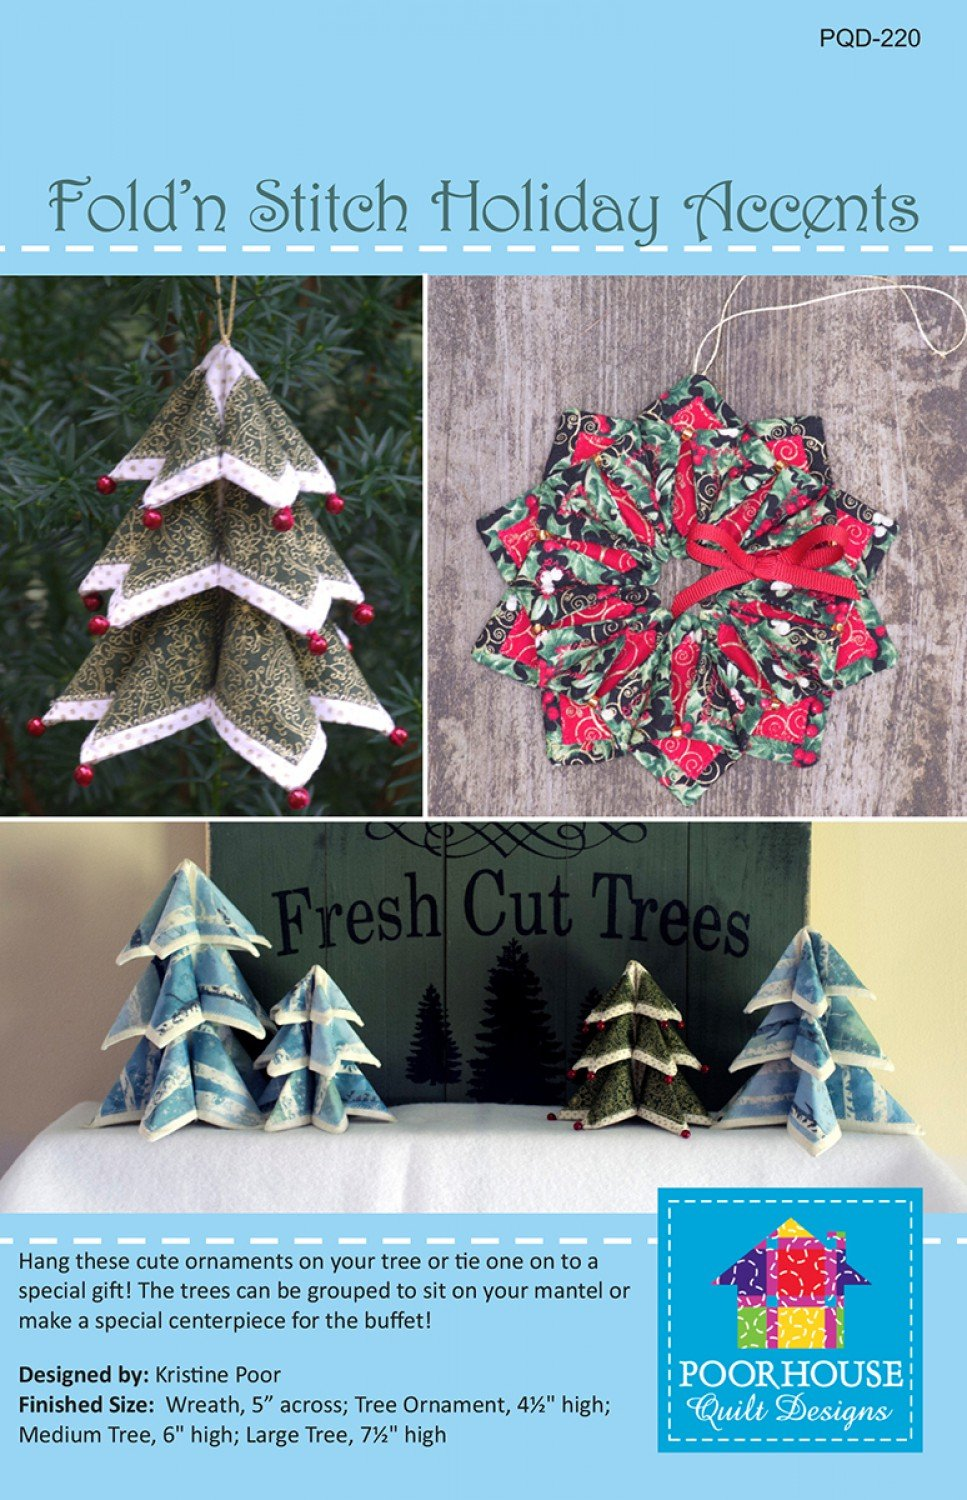 Fold'n Stitch Holiday Accents